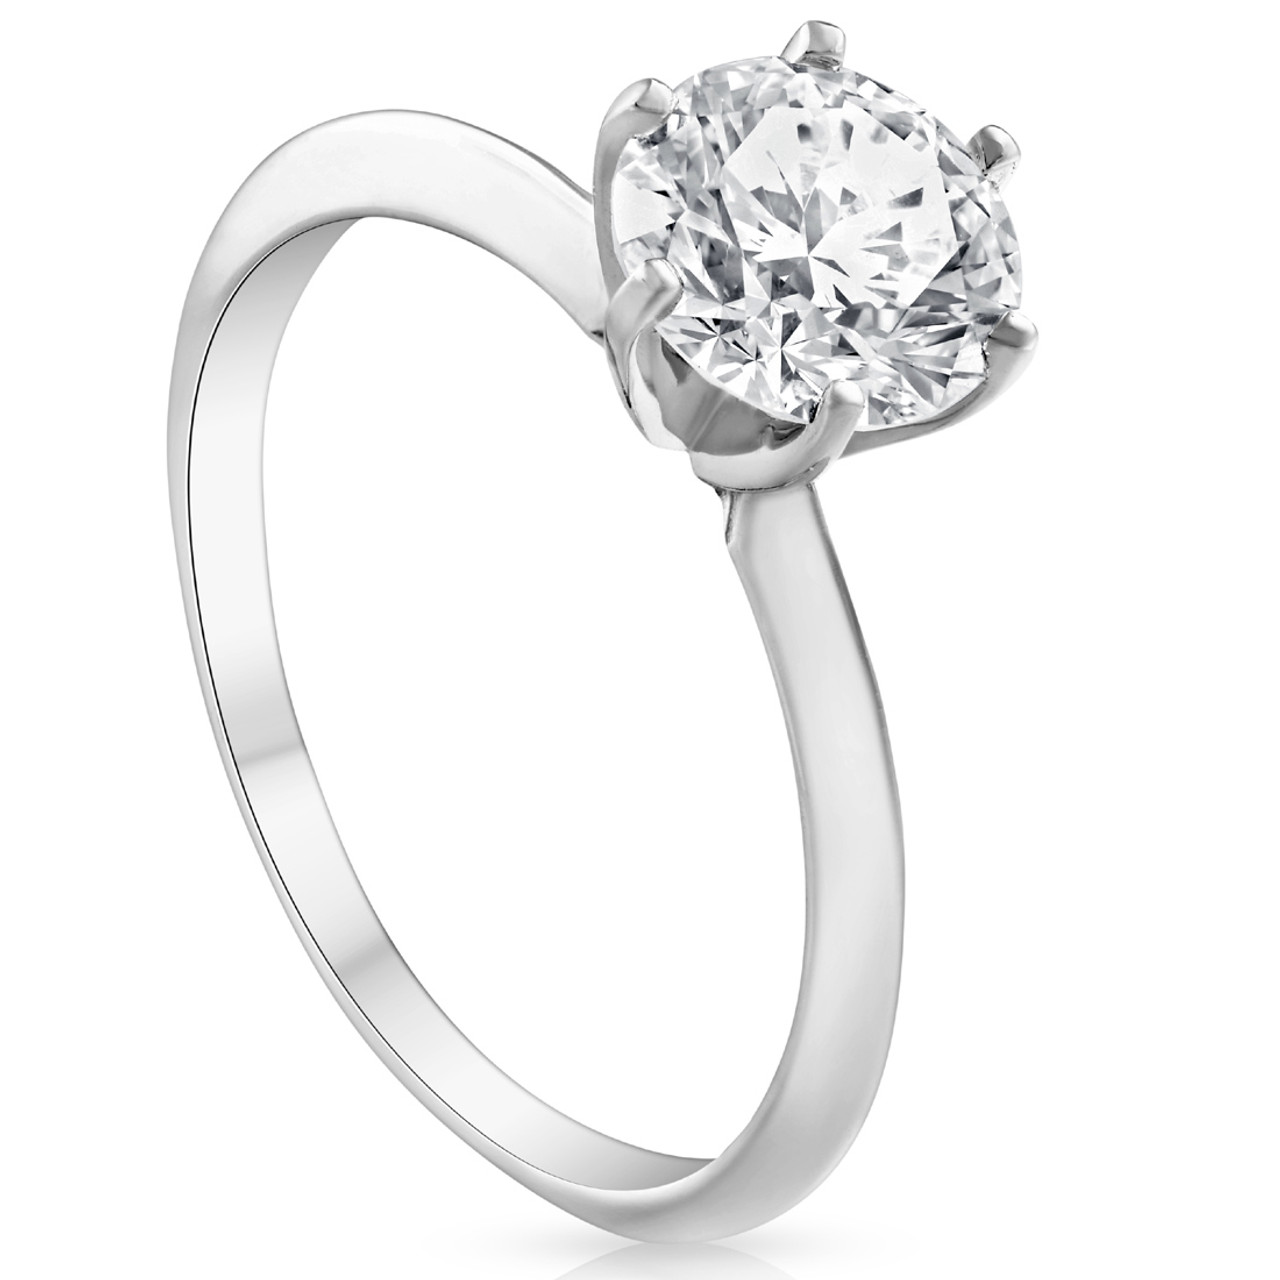 1 Ct Round Cut Diamond Solitaire Engagement Ring 14k White Gold Enhanced Jewelry Watches Engagement Wedding